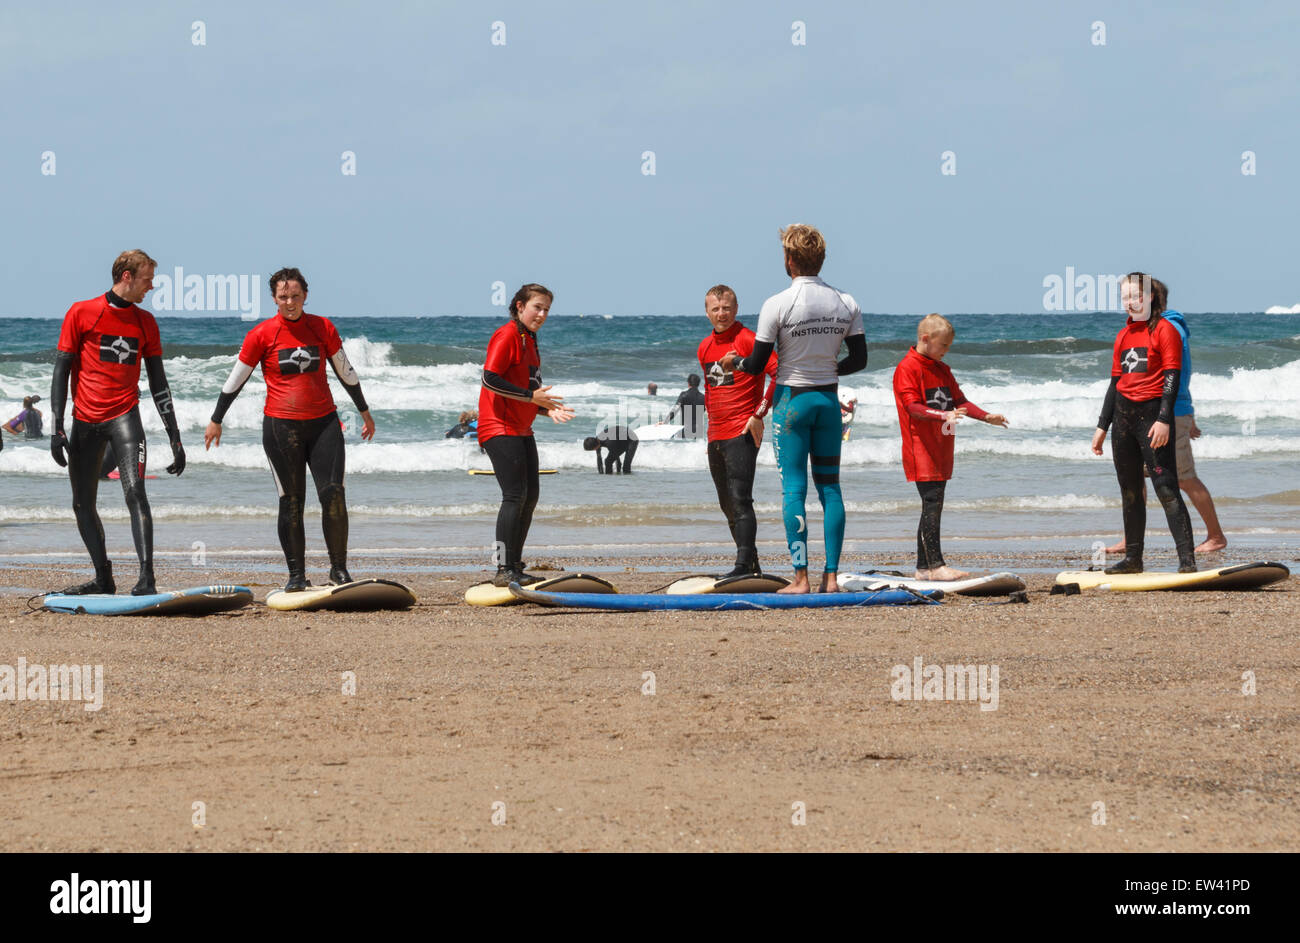 Surfing lessons at a surf school on  the beach at Polzeath Cornwall, UK - Stock Image